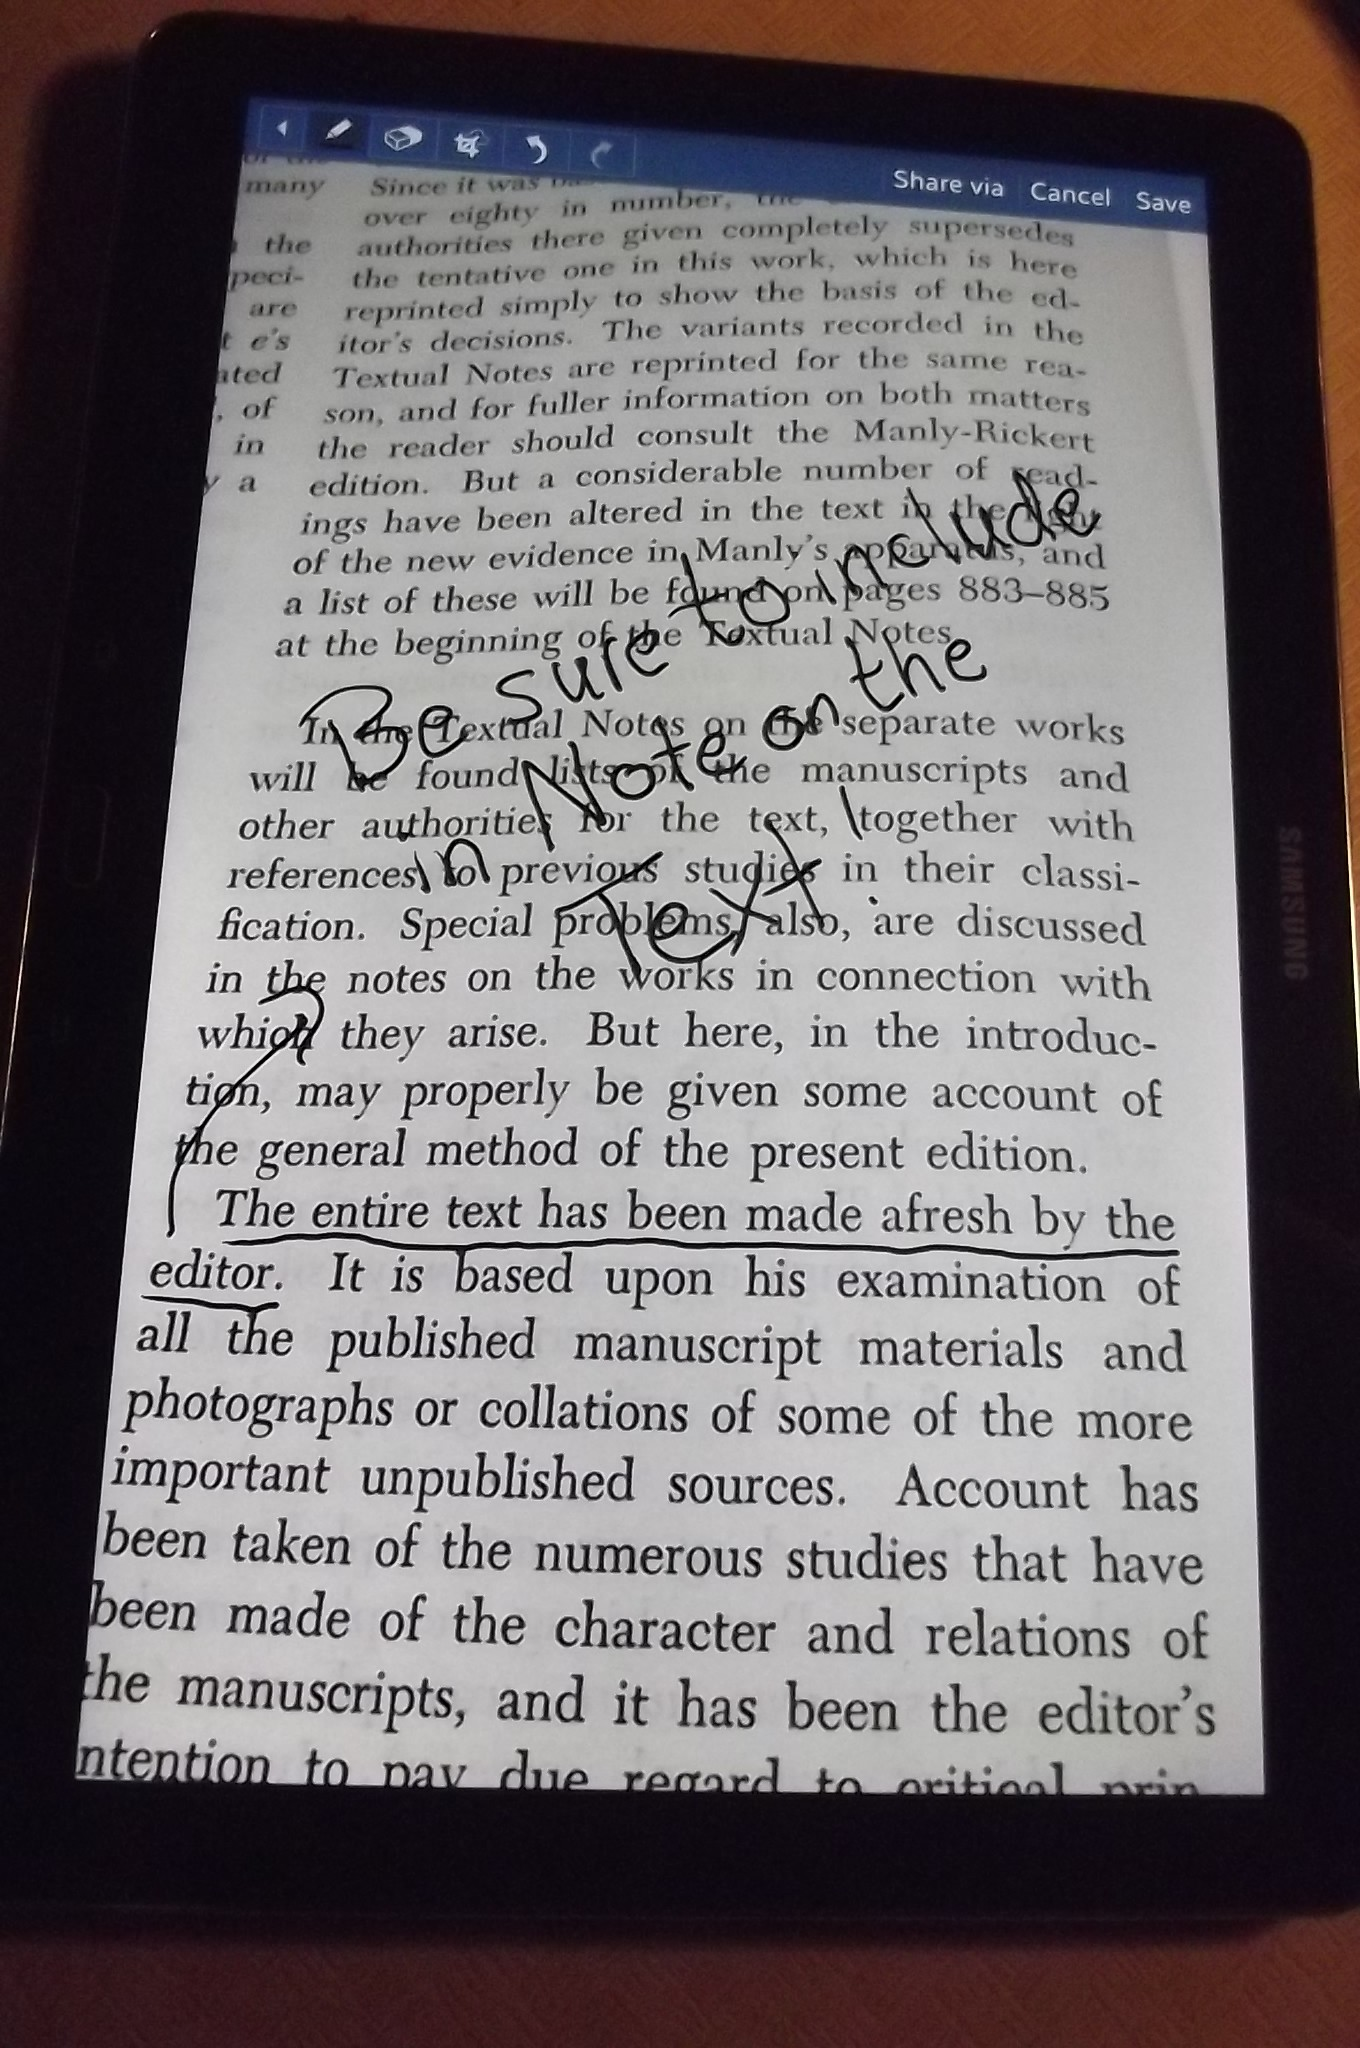 chaucer s general prologue to the canterbury tales as a case for figure 1b image shows the same black framed tablet computer tablet displays text